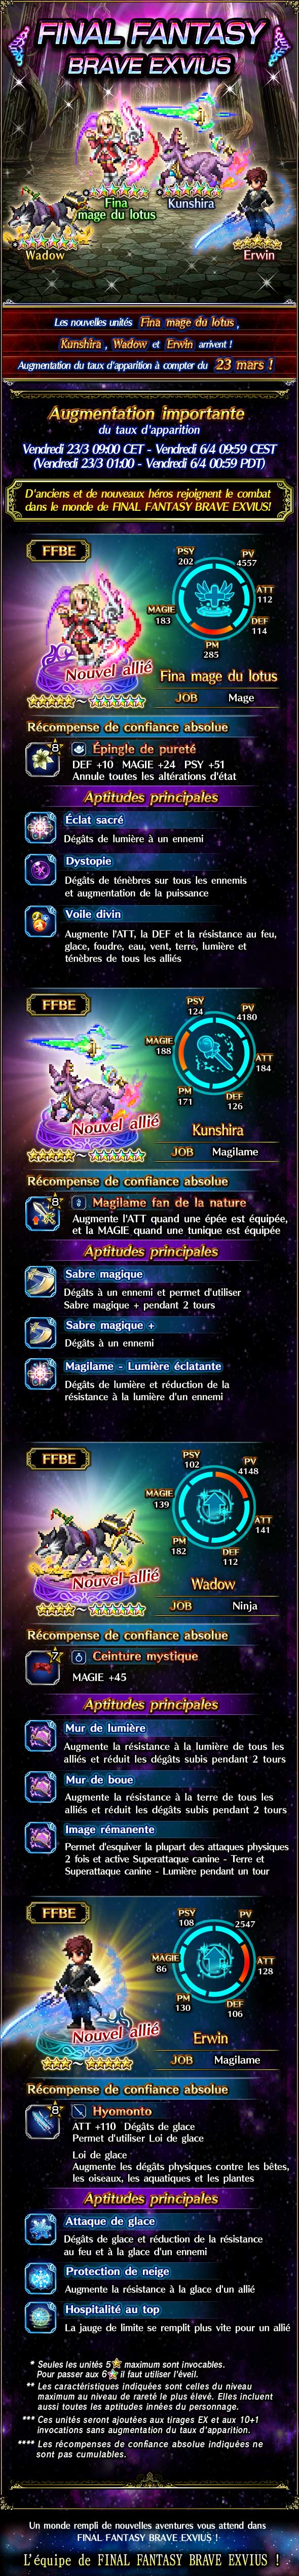 Invocation du moment - FFBE - Bannière CG Fina (LMF) 20180320_gacha_NEWS_FFBE15_Compilation